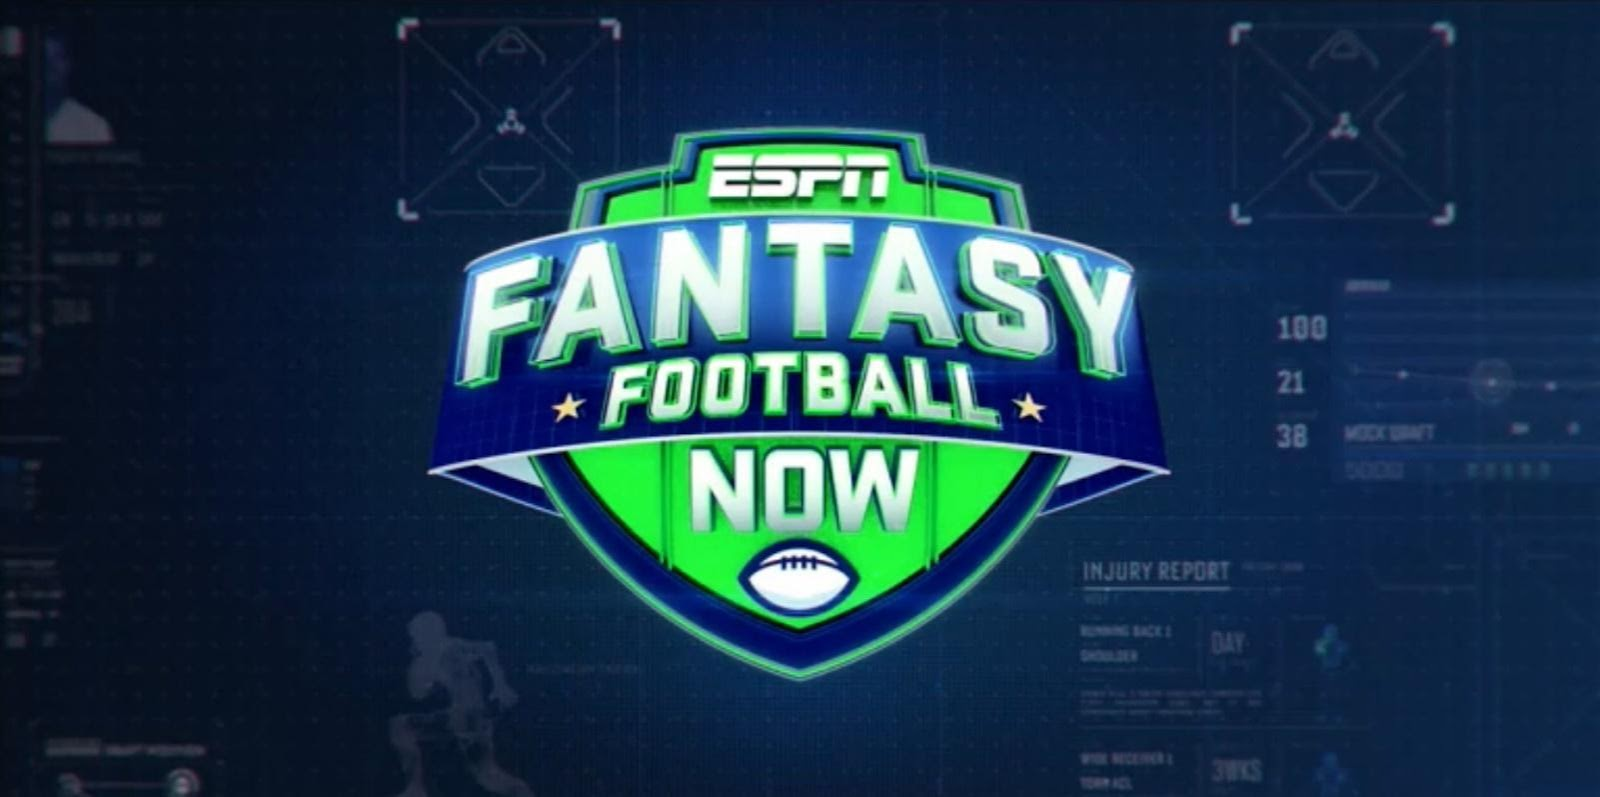 ESPN Fantasy Football Now - Awful Announcing